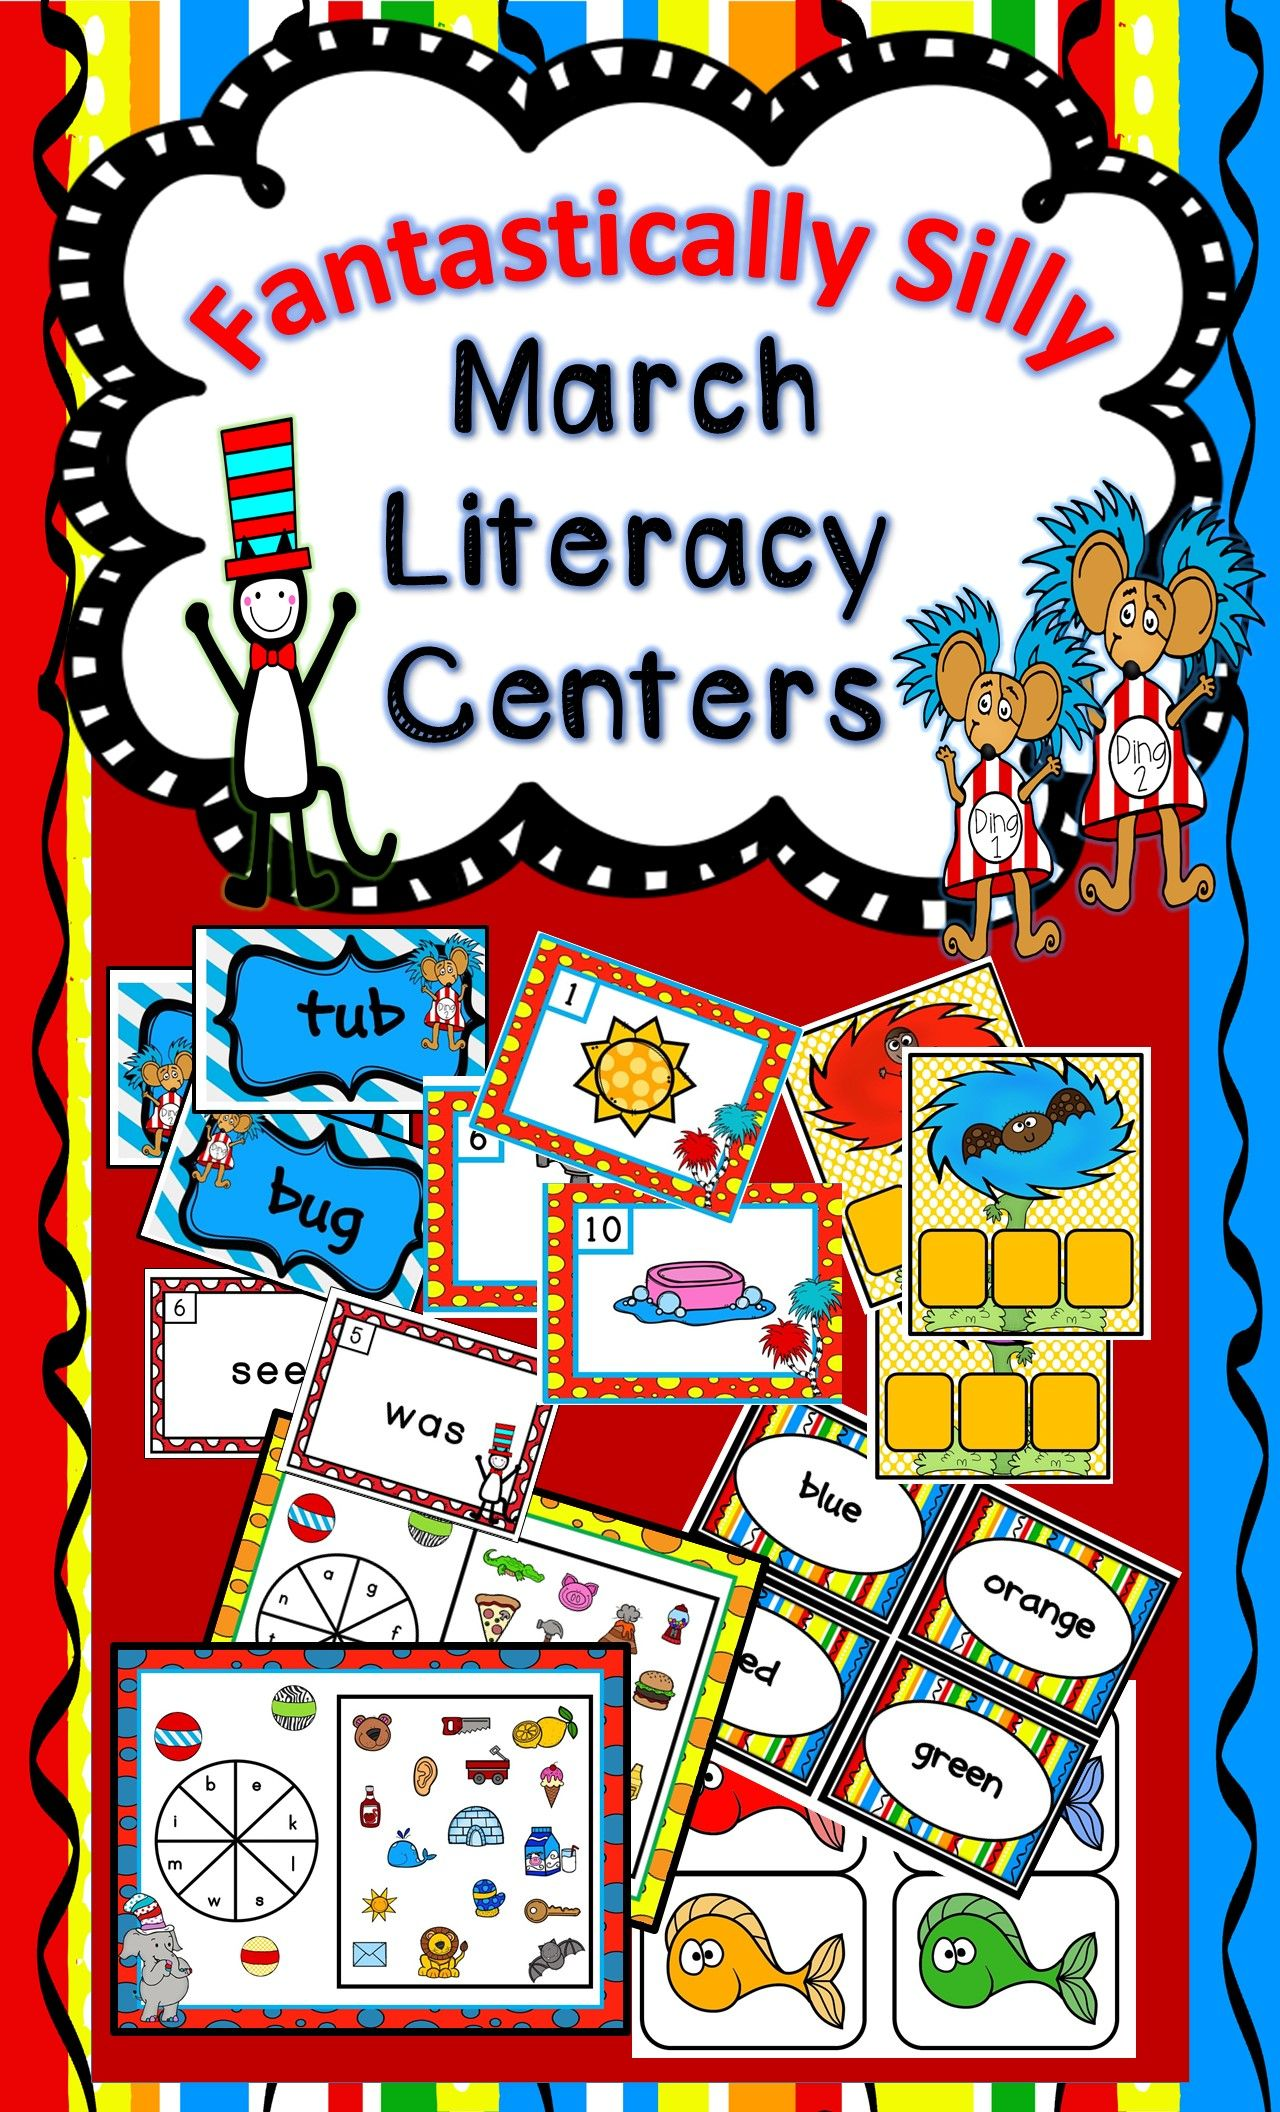 Fantastically Silly March Literacy Centers And Work